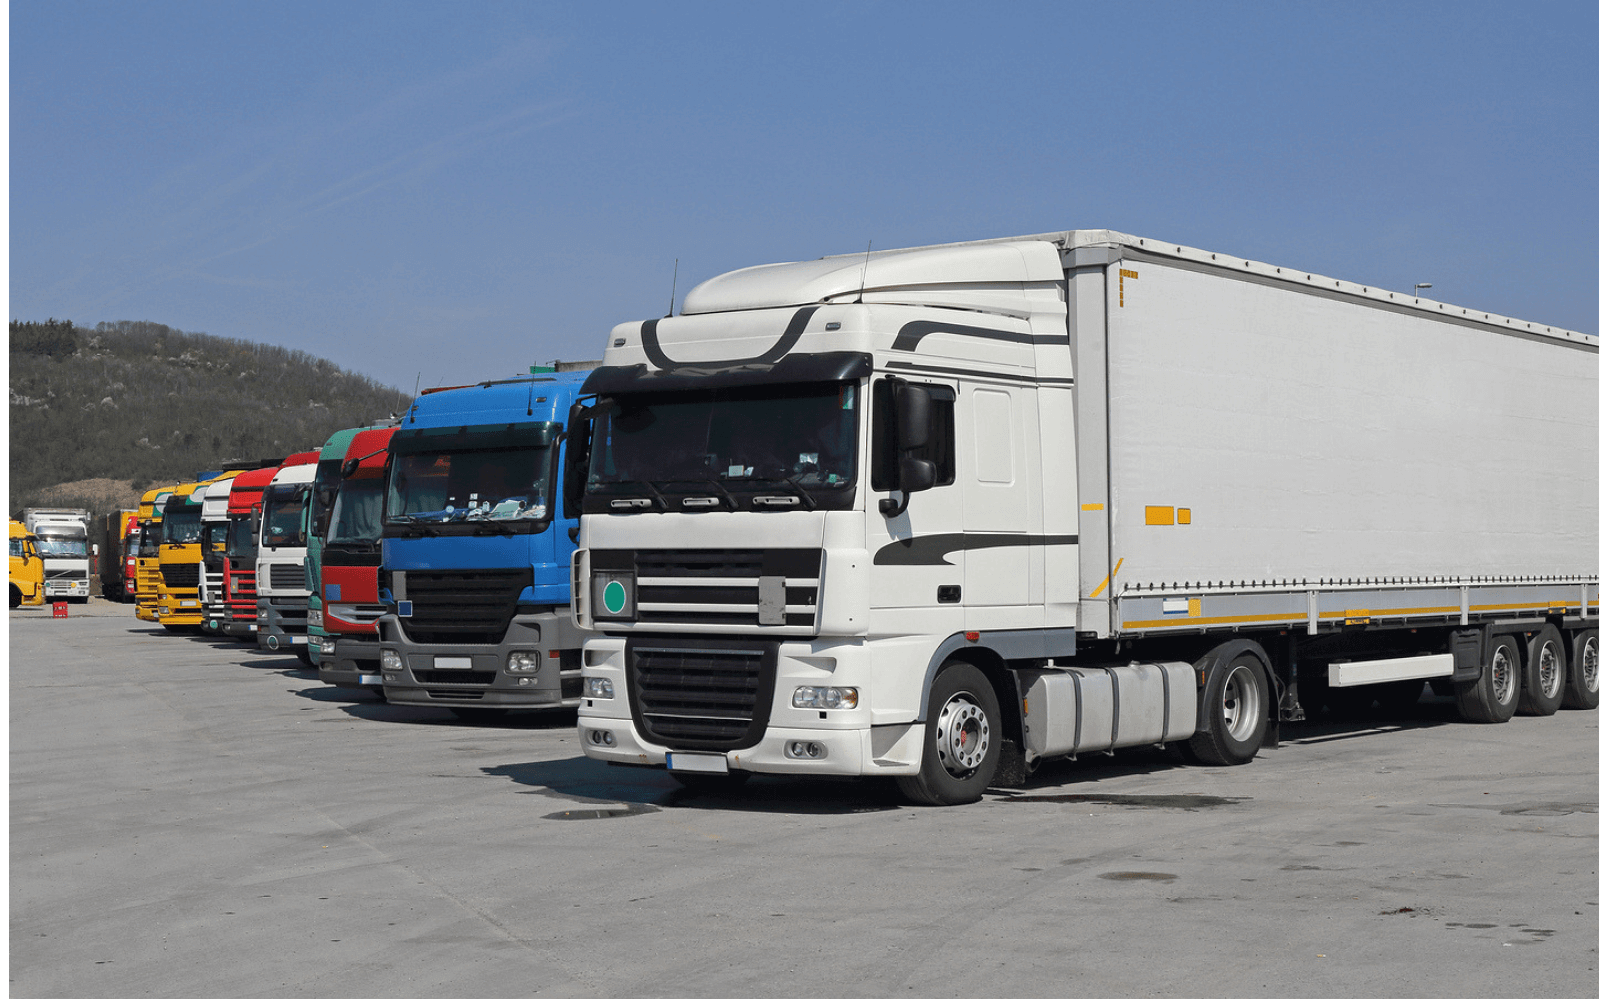 Front view of lorries at truckstop